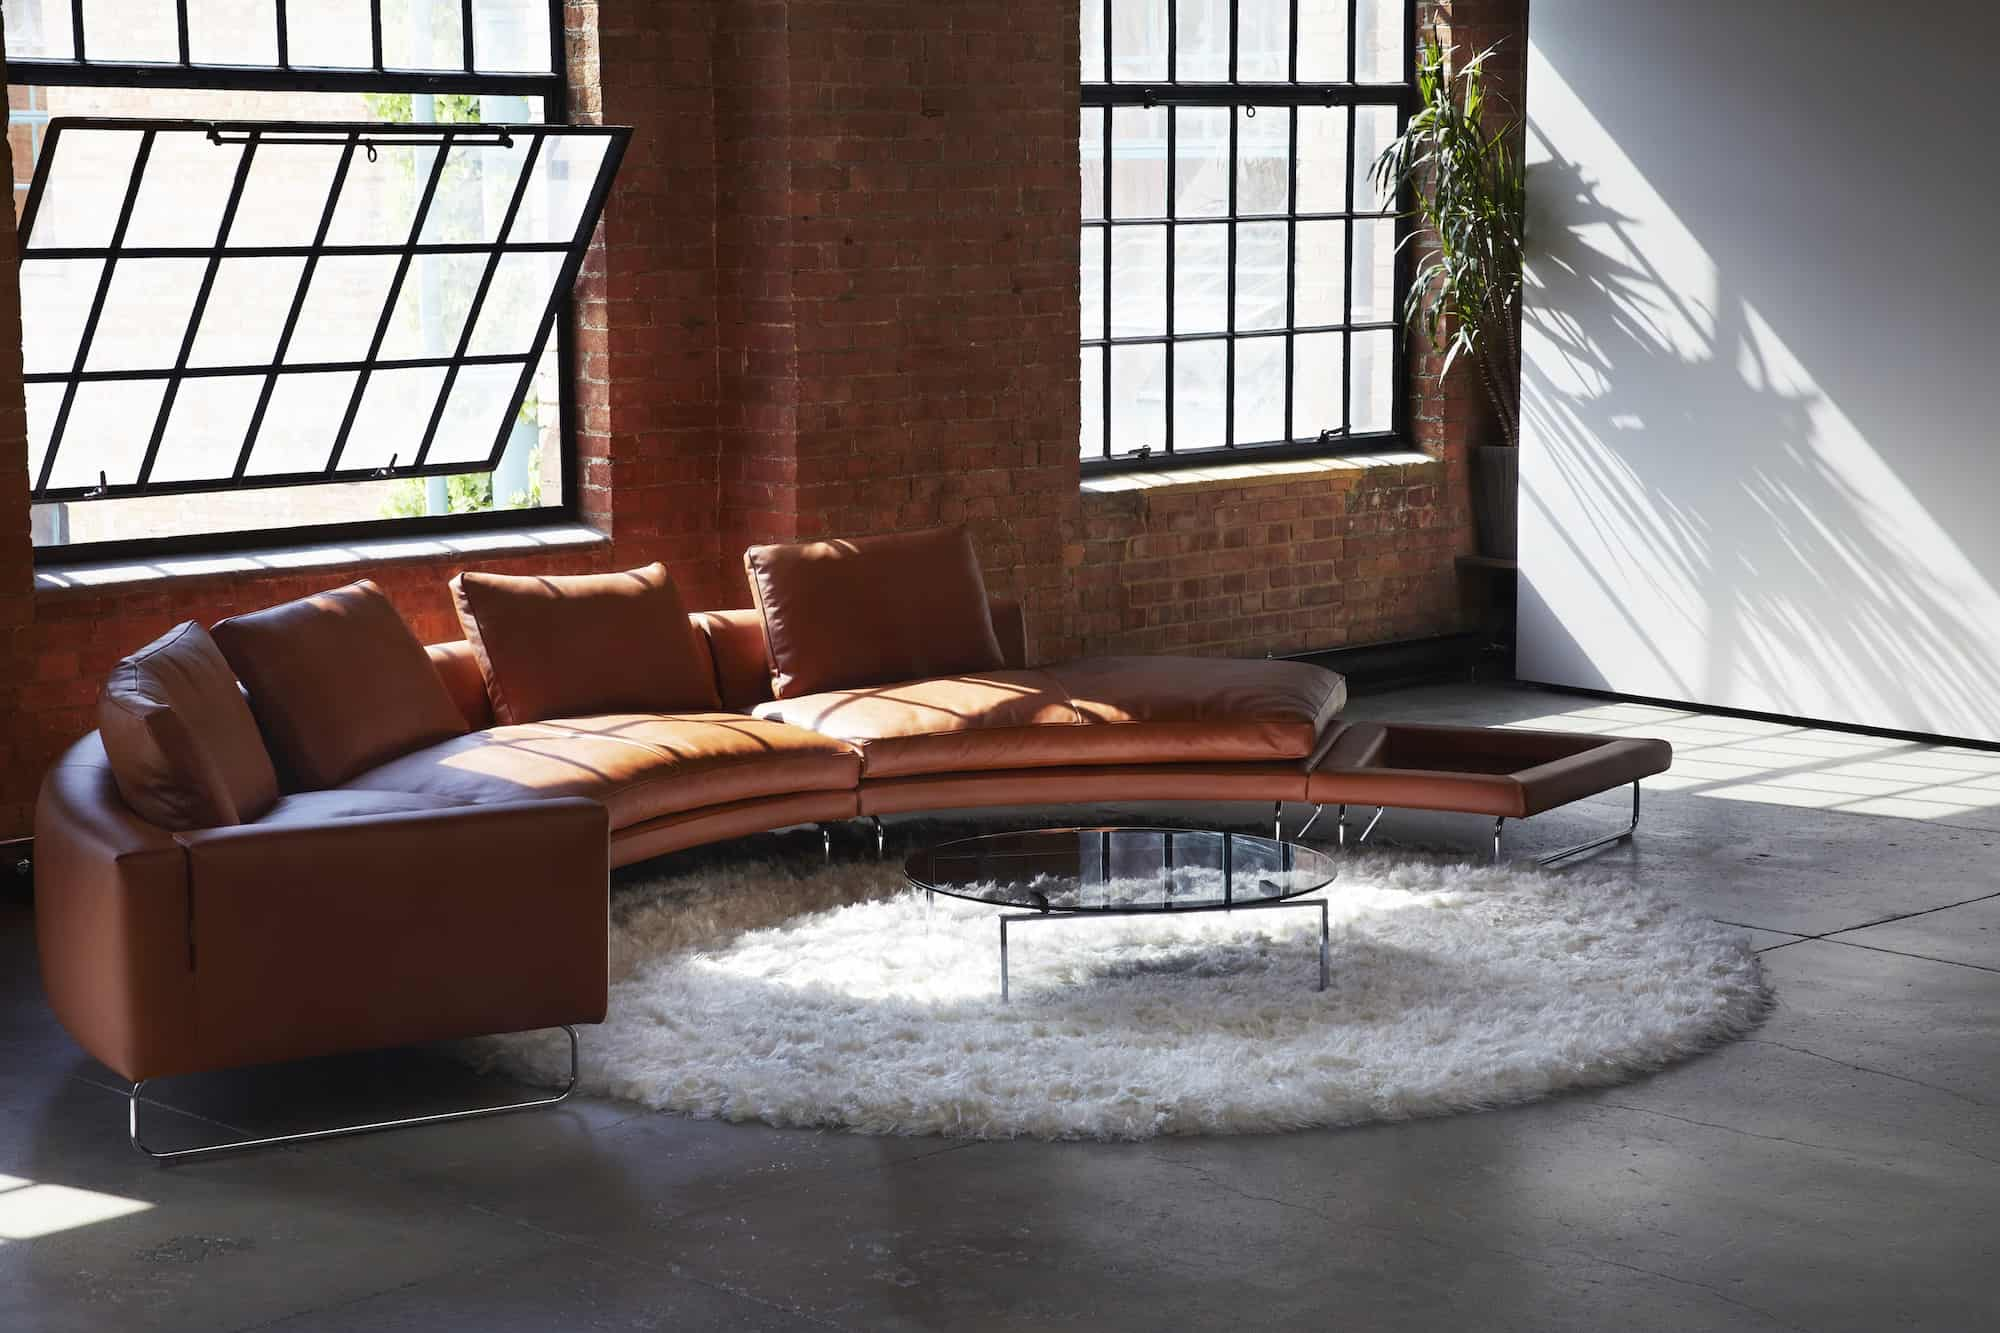 Steele E14 - A cool, masculine, warehouse style apartment available for photoshoots and filming hires - The Location Guys